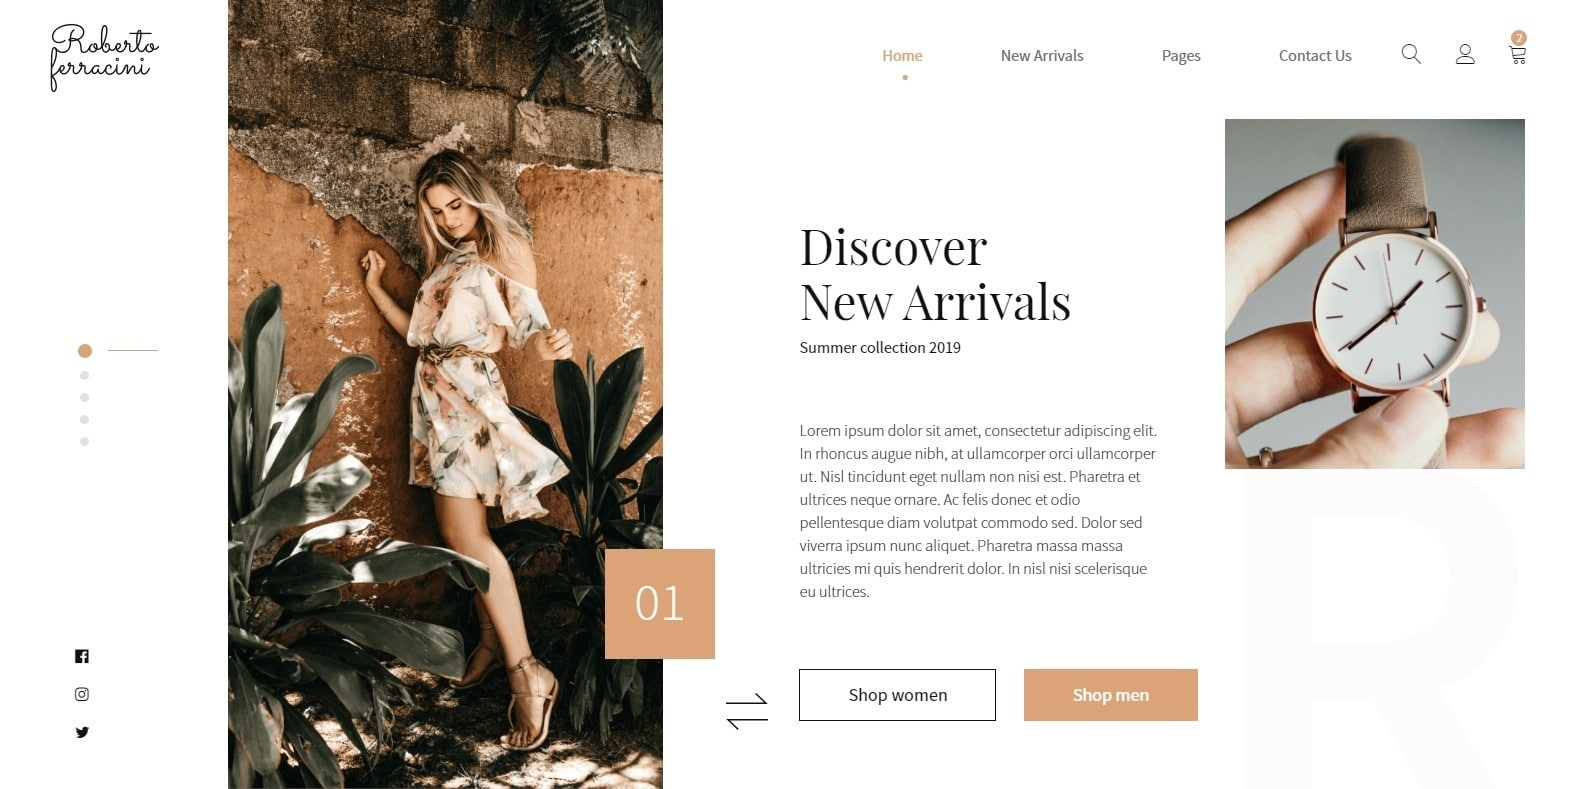 roberto-ferracini-fashion-website-template